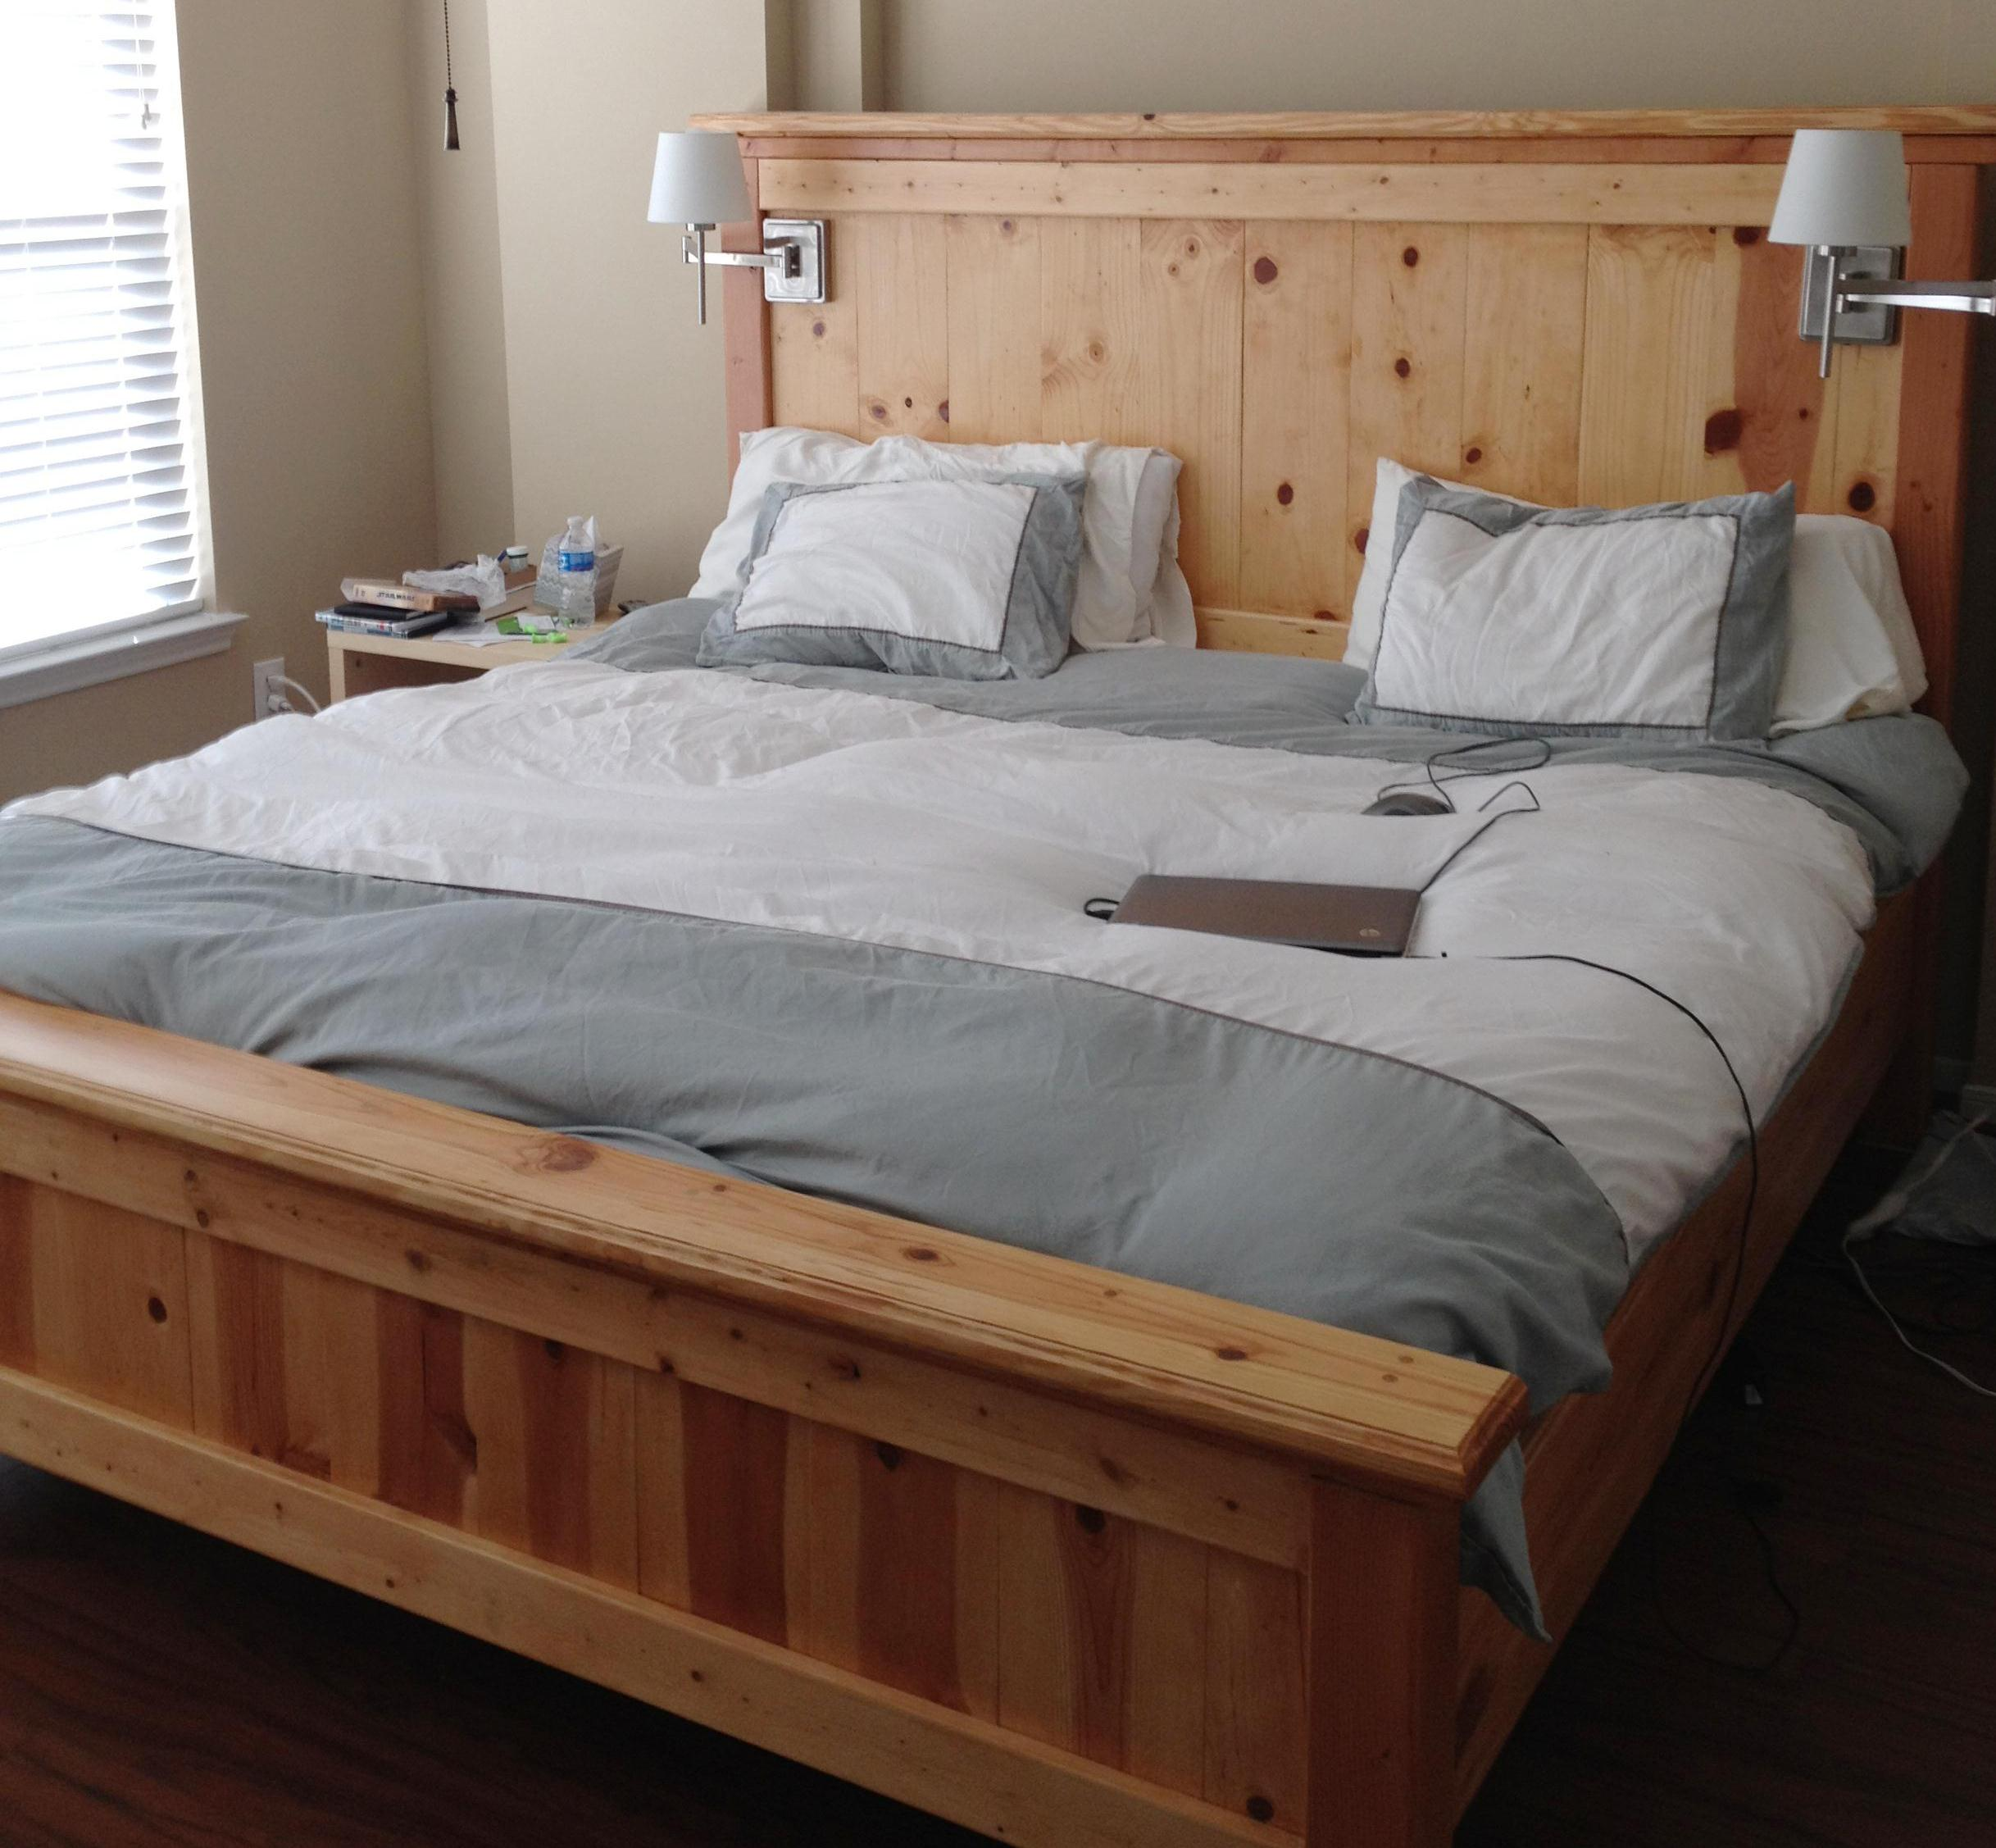 diy king size platform bed frame plans | Quick Woodworking Projects